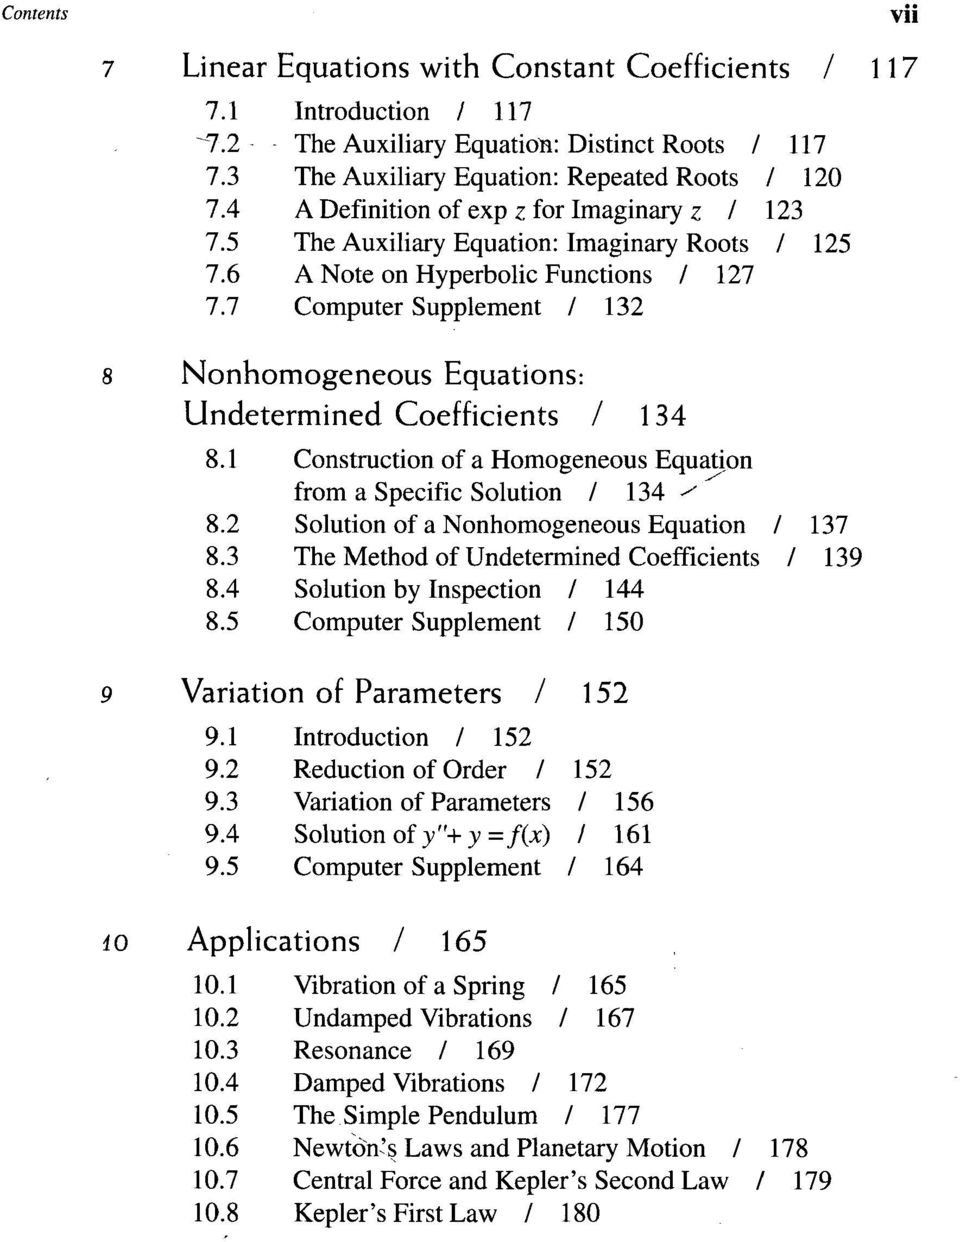 7 Computer Supplement / 132 8 Nonhomogeneous Equations: Undetermined Coefficients / 134 8.1 Construction of a Homogeneous Equation from a Specific Solution / 134 ' 8.